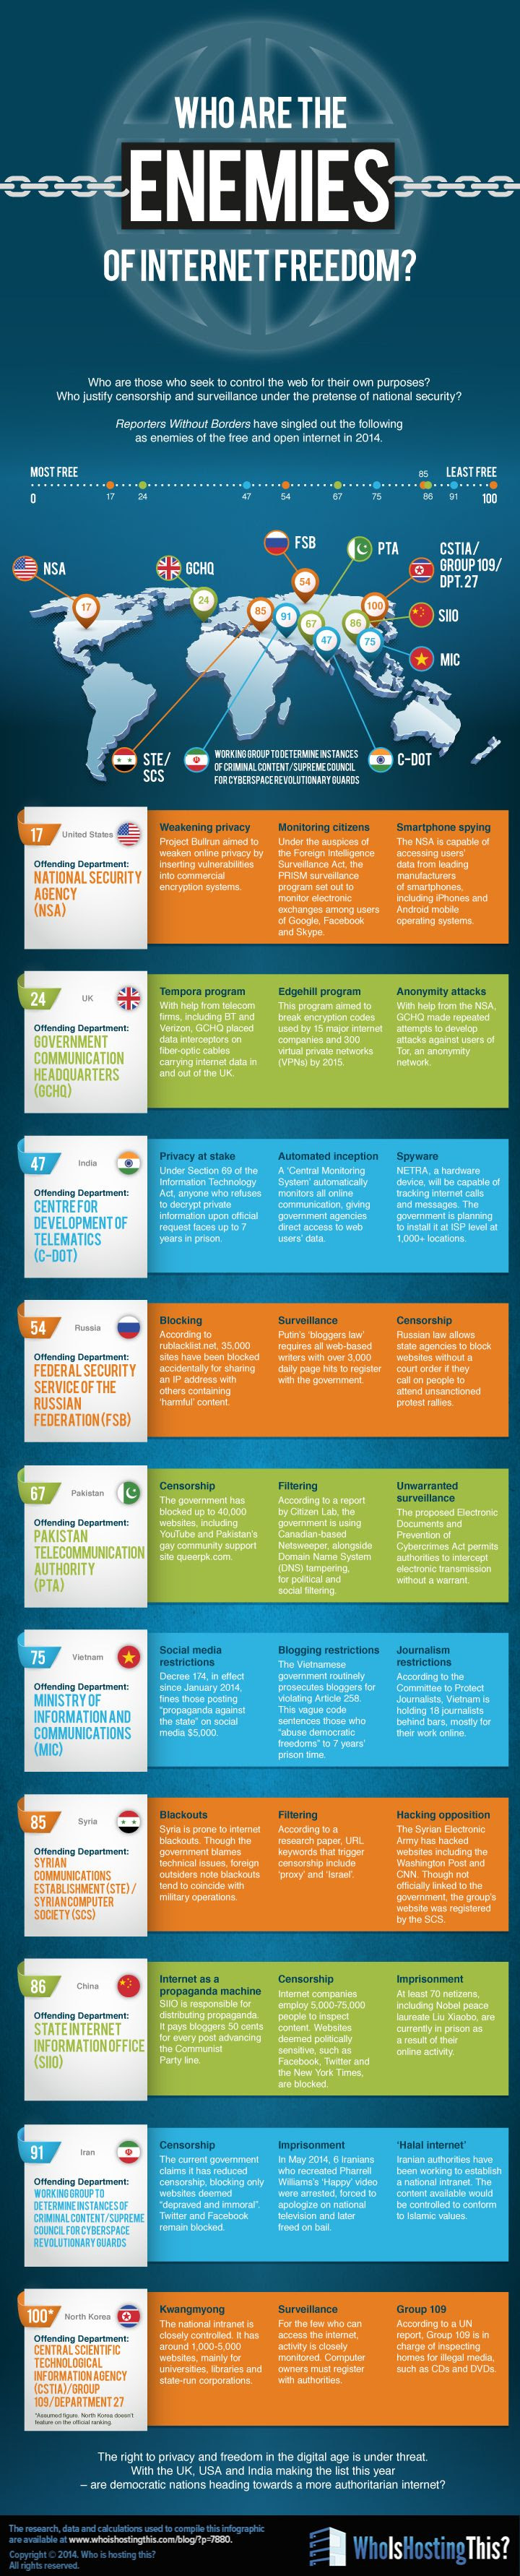 Infographic: Who Are the Enemies of Internet Freedom?